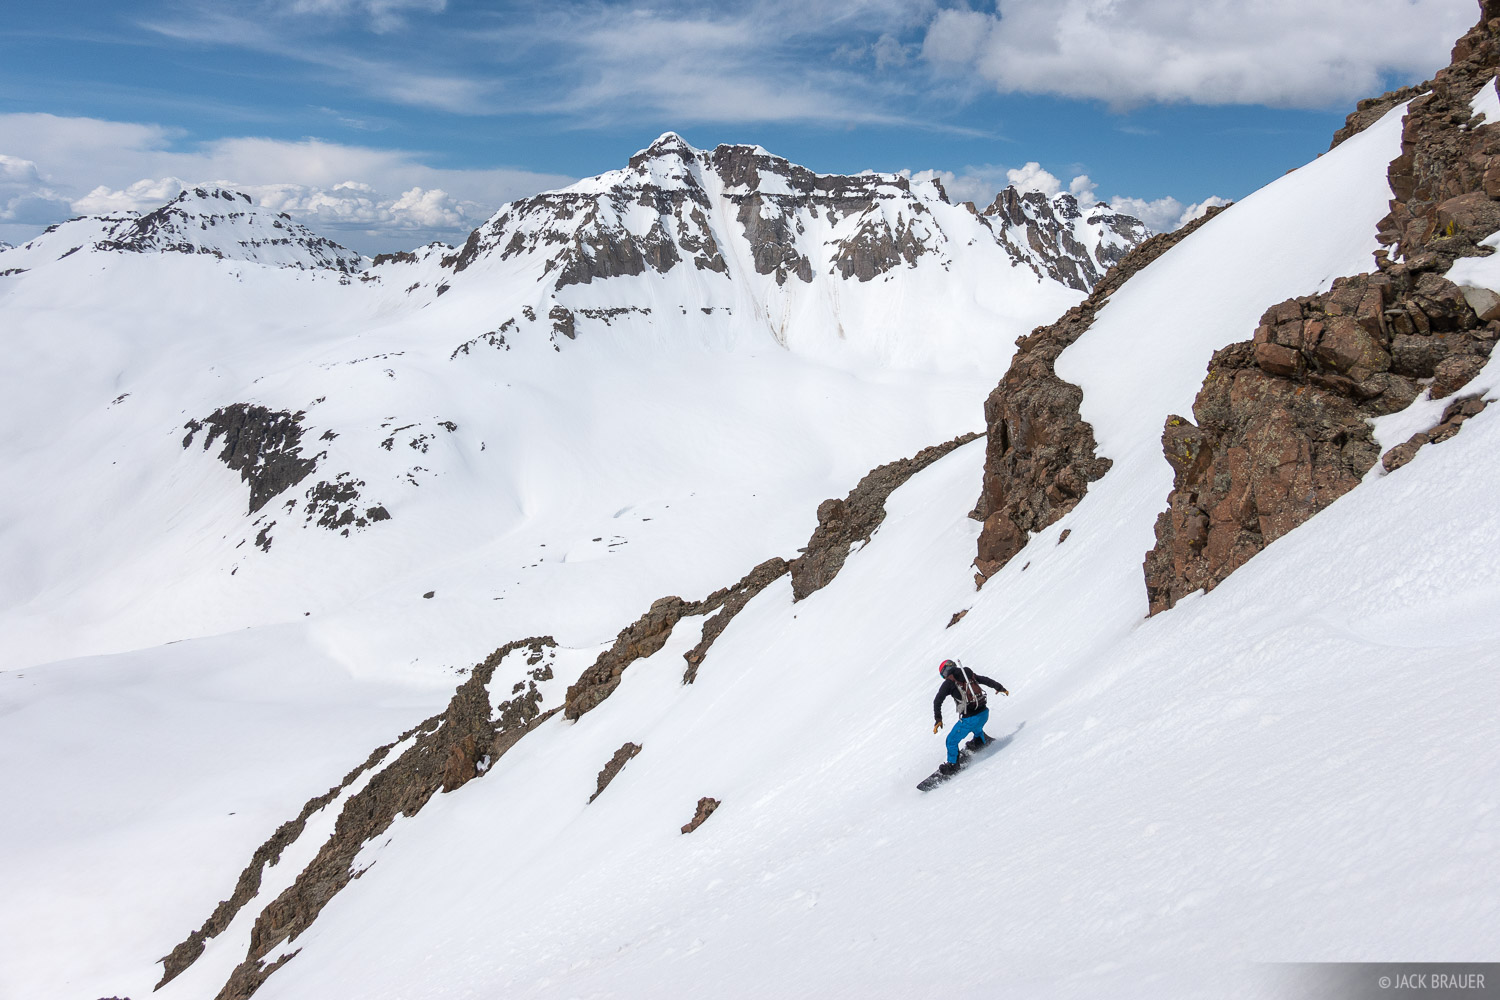 Parker McAbery rides a couloir in the Sneffels Range - June.